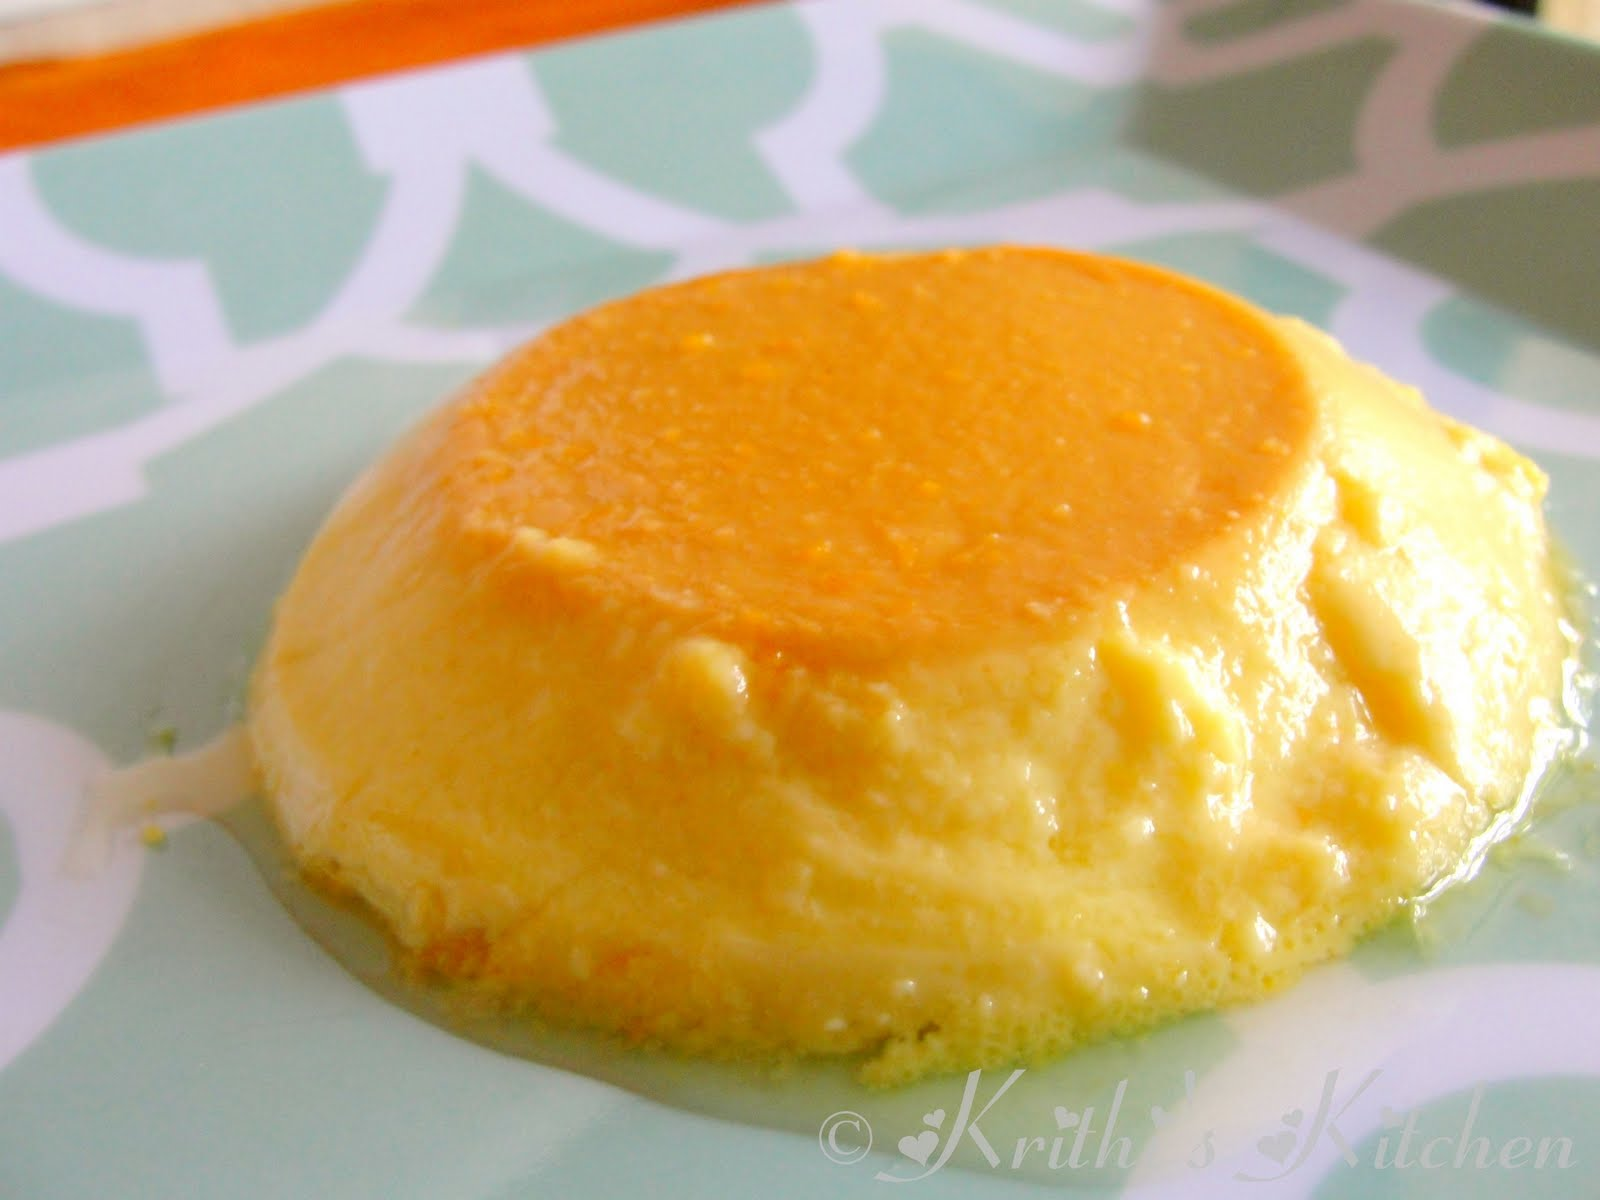 Krithi's Kitchen: Orange Flan / Orange Crème caramel